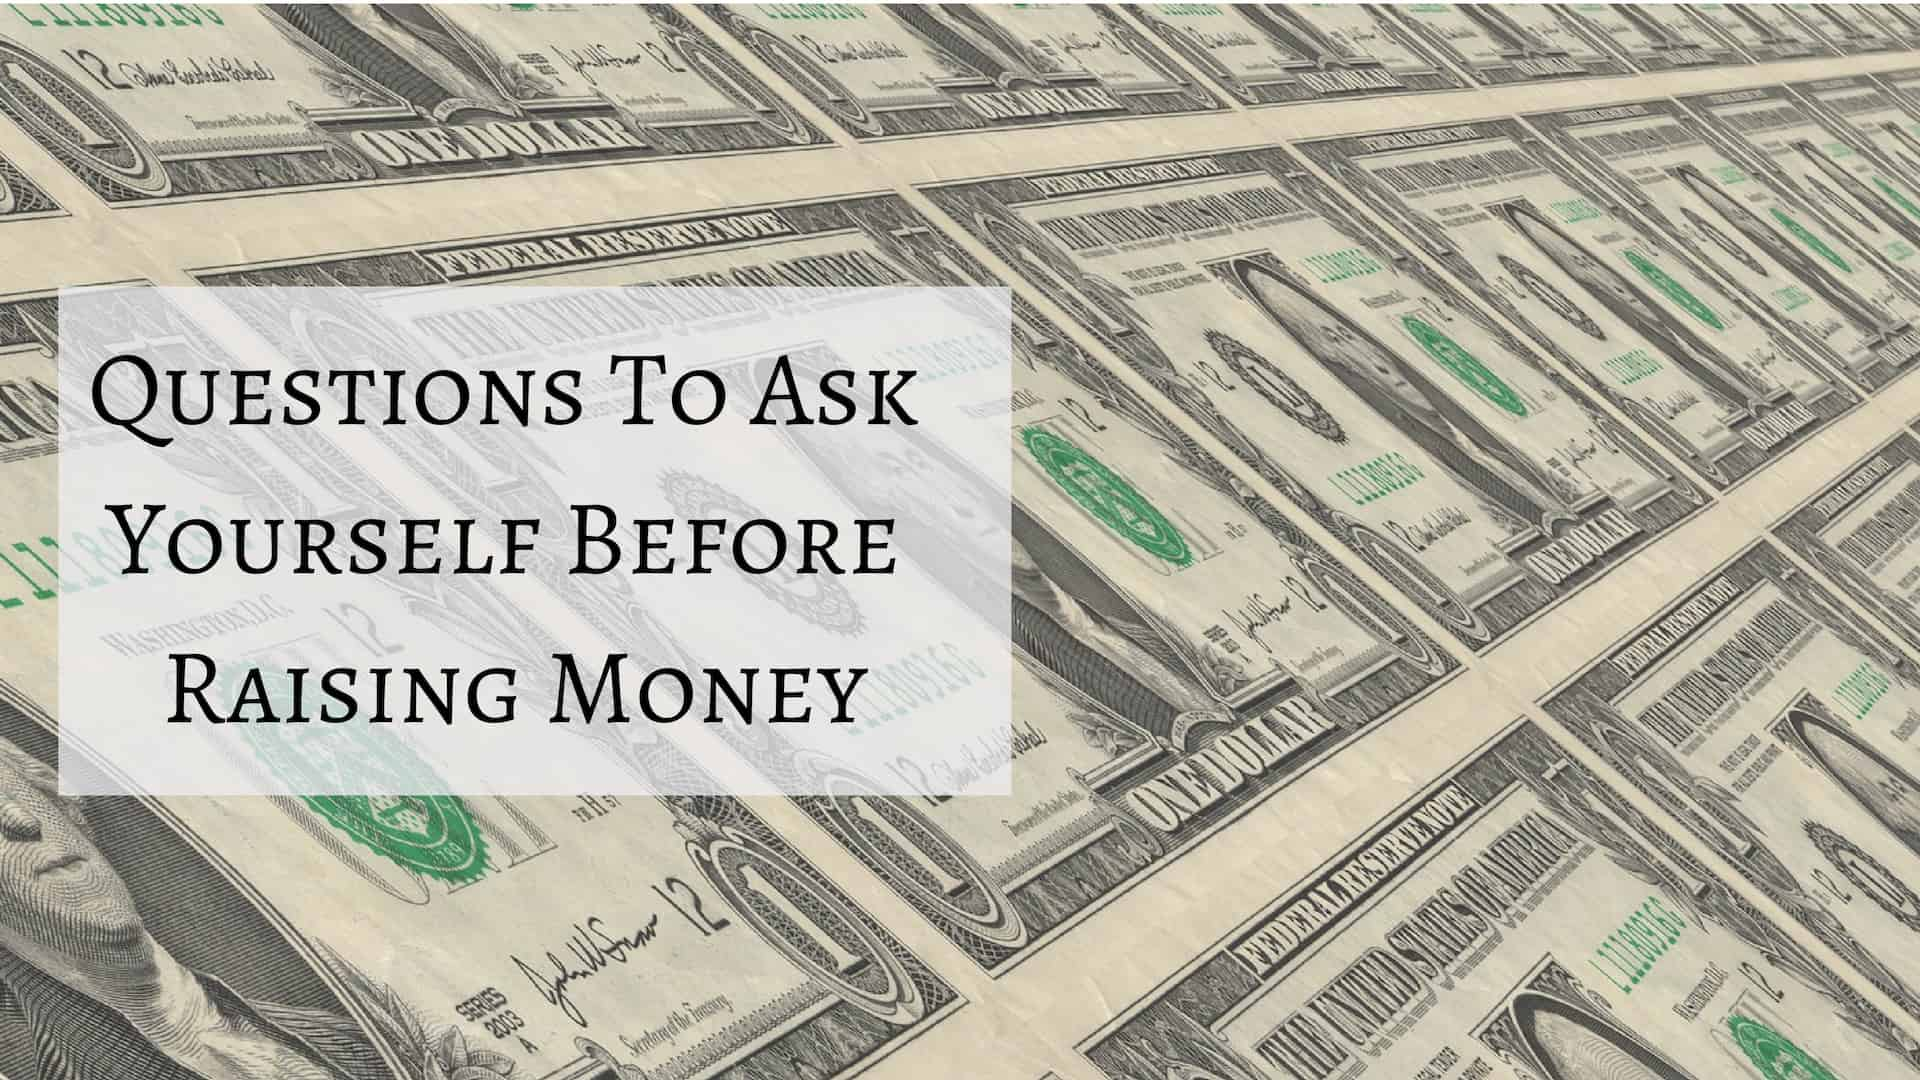 Questions To Ask Yourself Before Raising Money